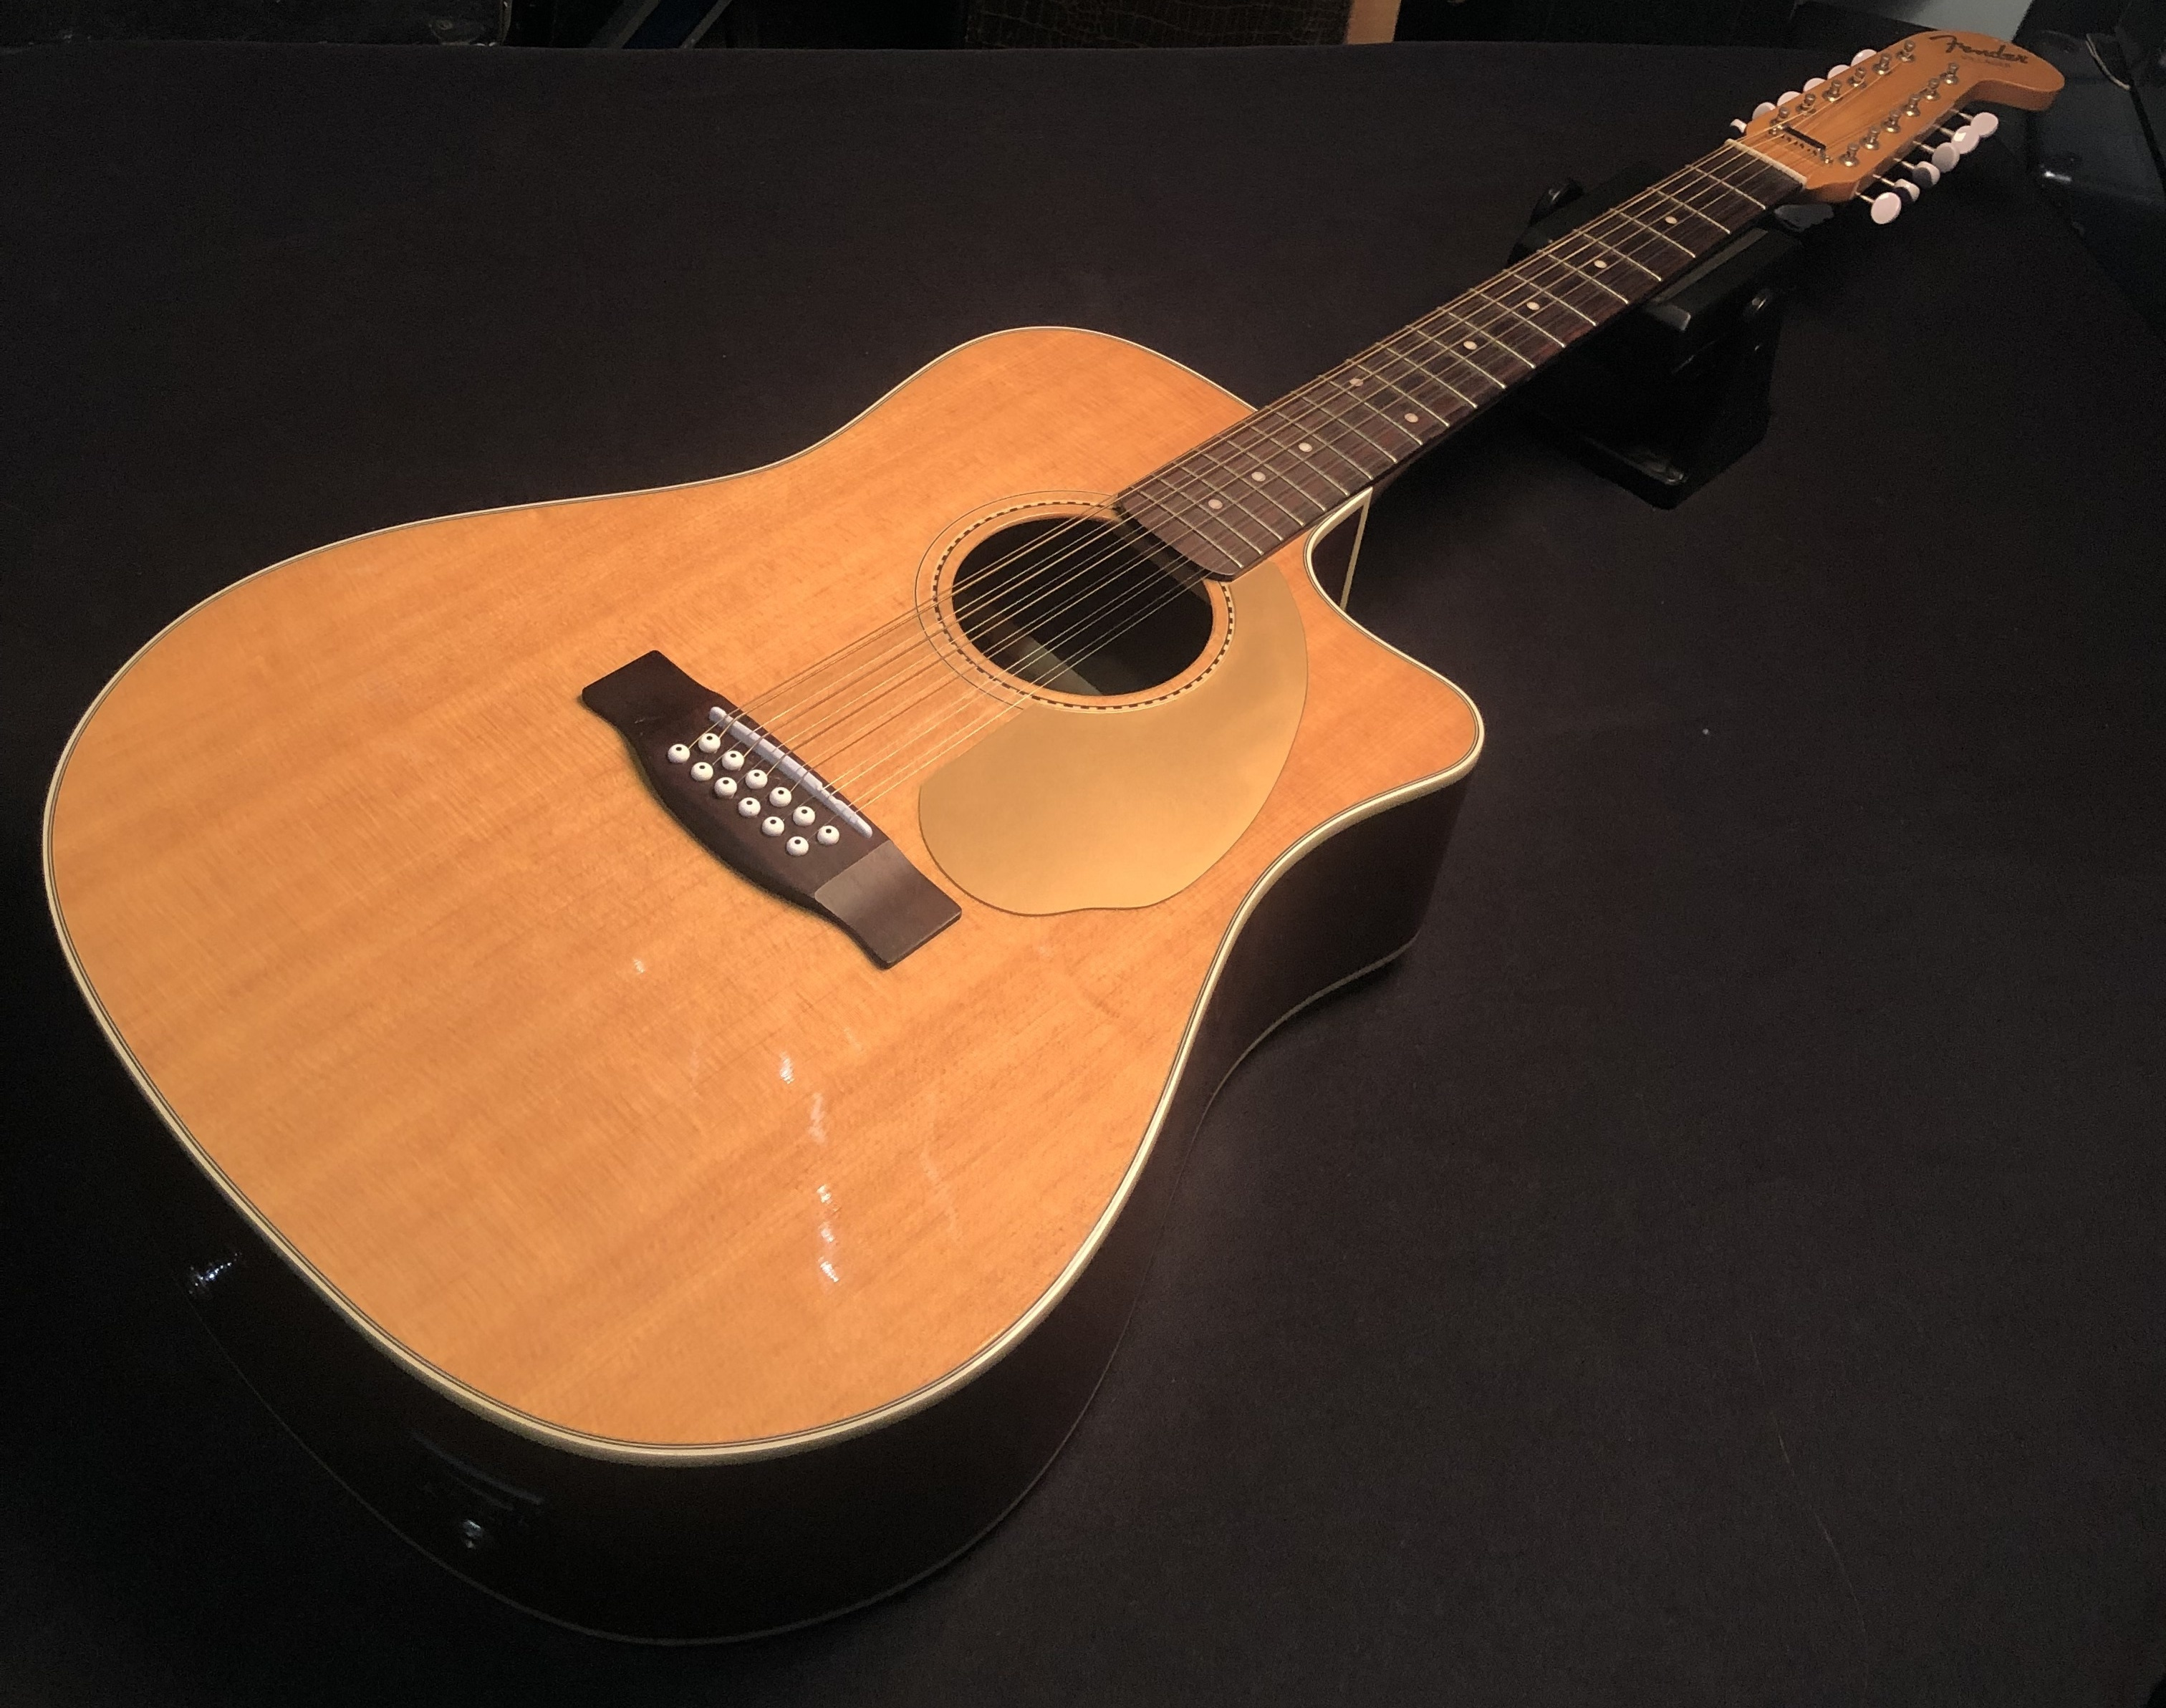 FENDER - Late 1960s Villager 12-String Electric Acoustic Guitar